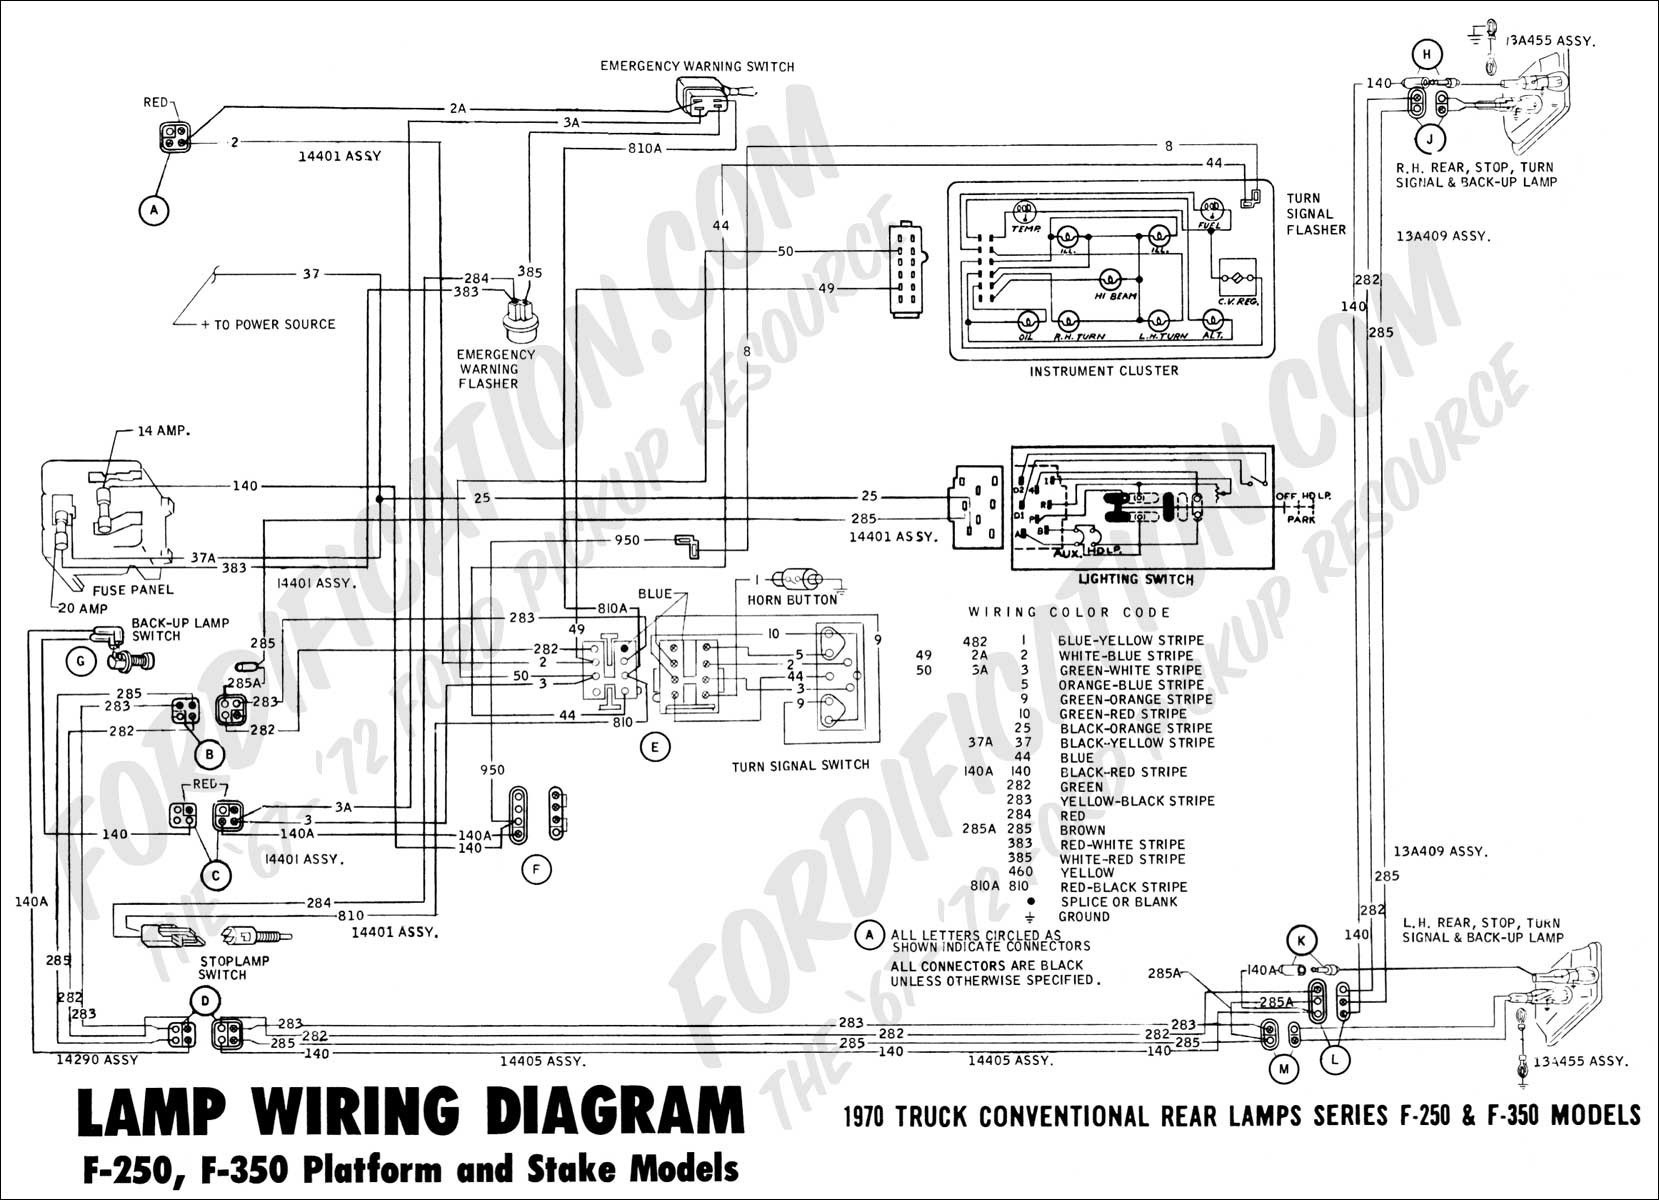 2001 Ford F350 Abs Wiring Diagram Diy Enthusiasts Diagrams 2012 Fuse Box 1985 F 250 Wire U2022 Rh Friendsoffido Co 01 73 Engine 2006 Trailer